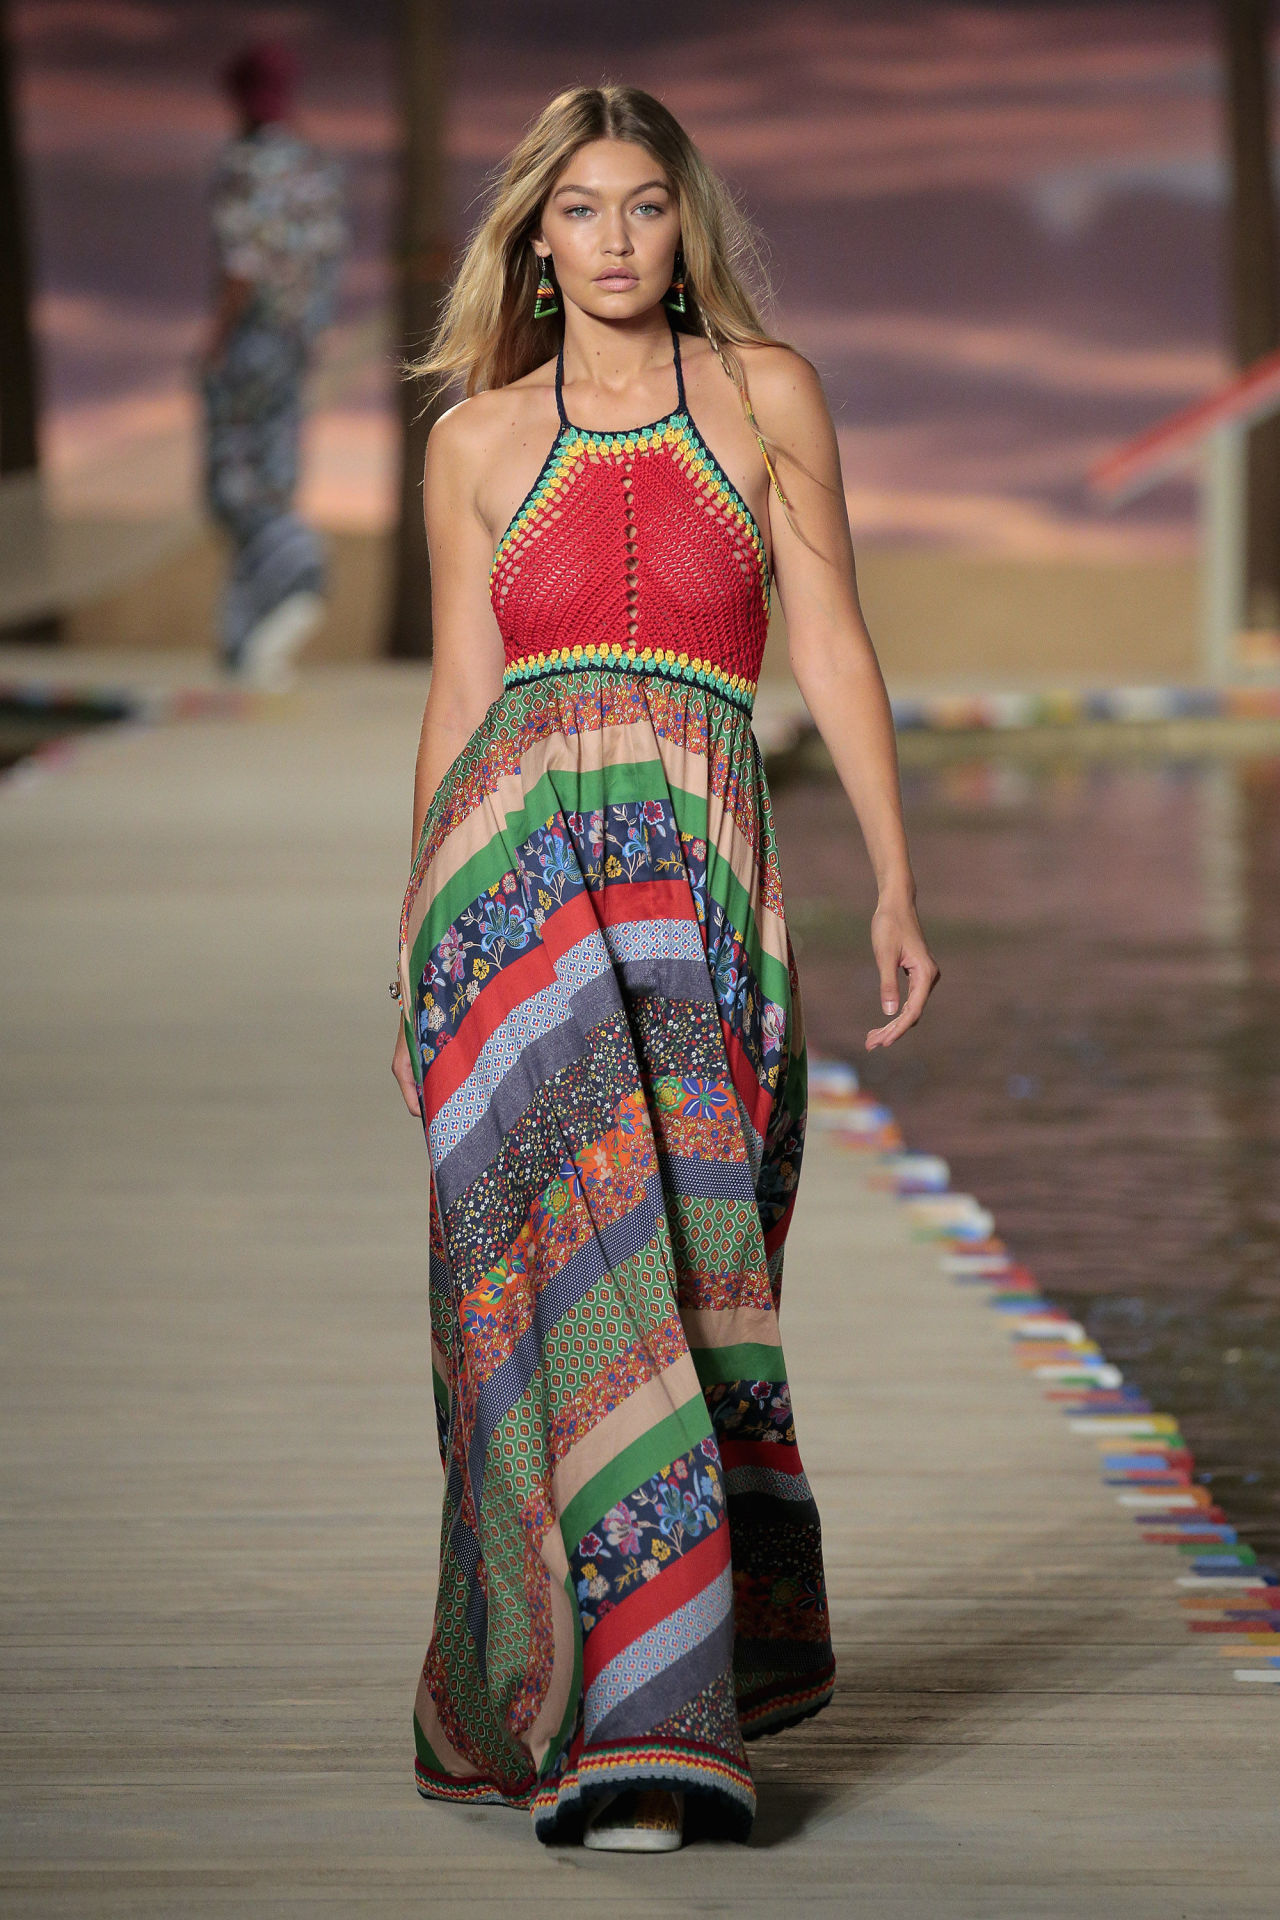 Runway Dress Tommy Hilfiger Gallery Gettyimages